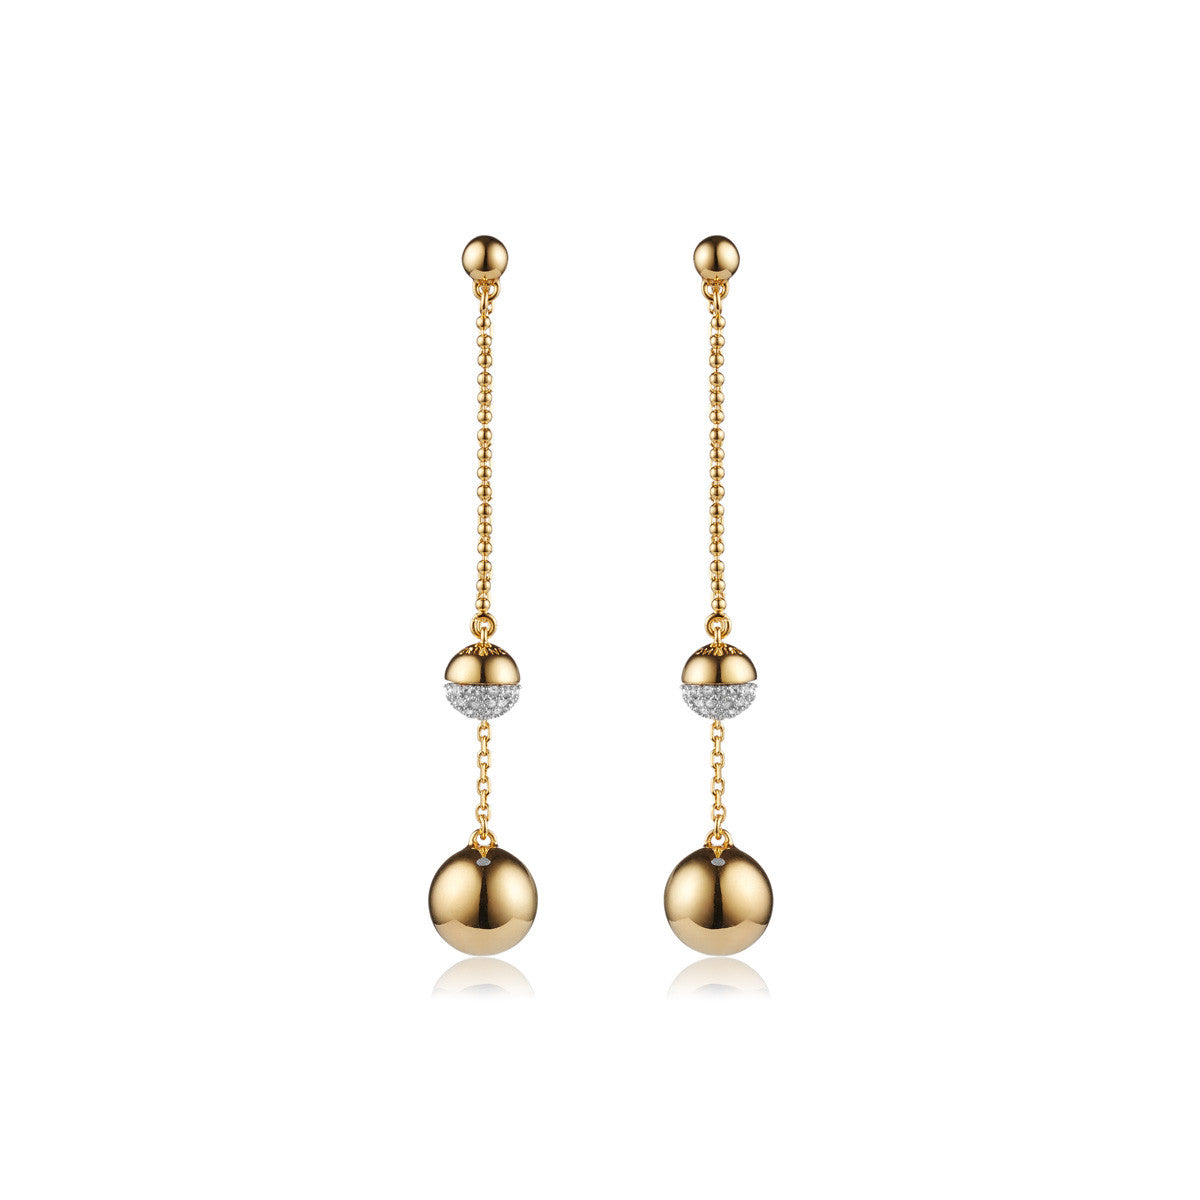 Solid brass, 18K gold plated Pendulus earrings hang with a gold sphere and set with Swarovski® crystal pavè detailing – front